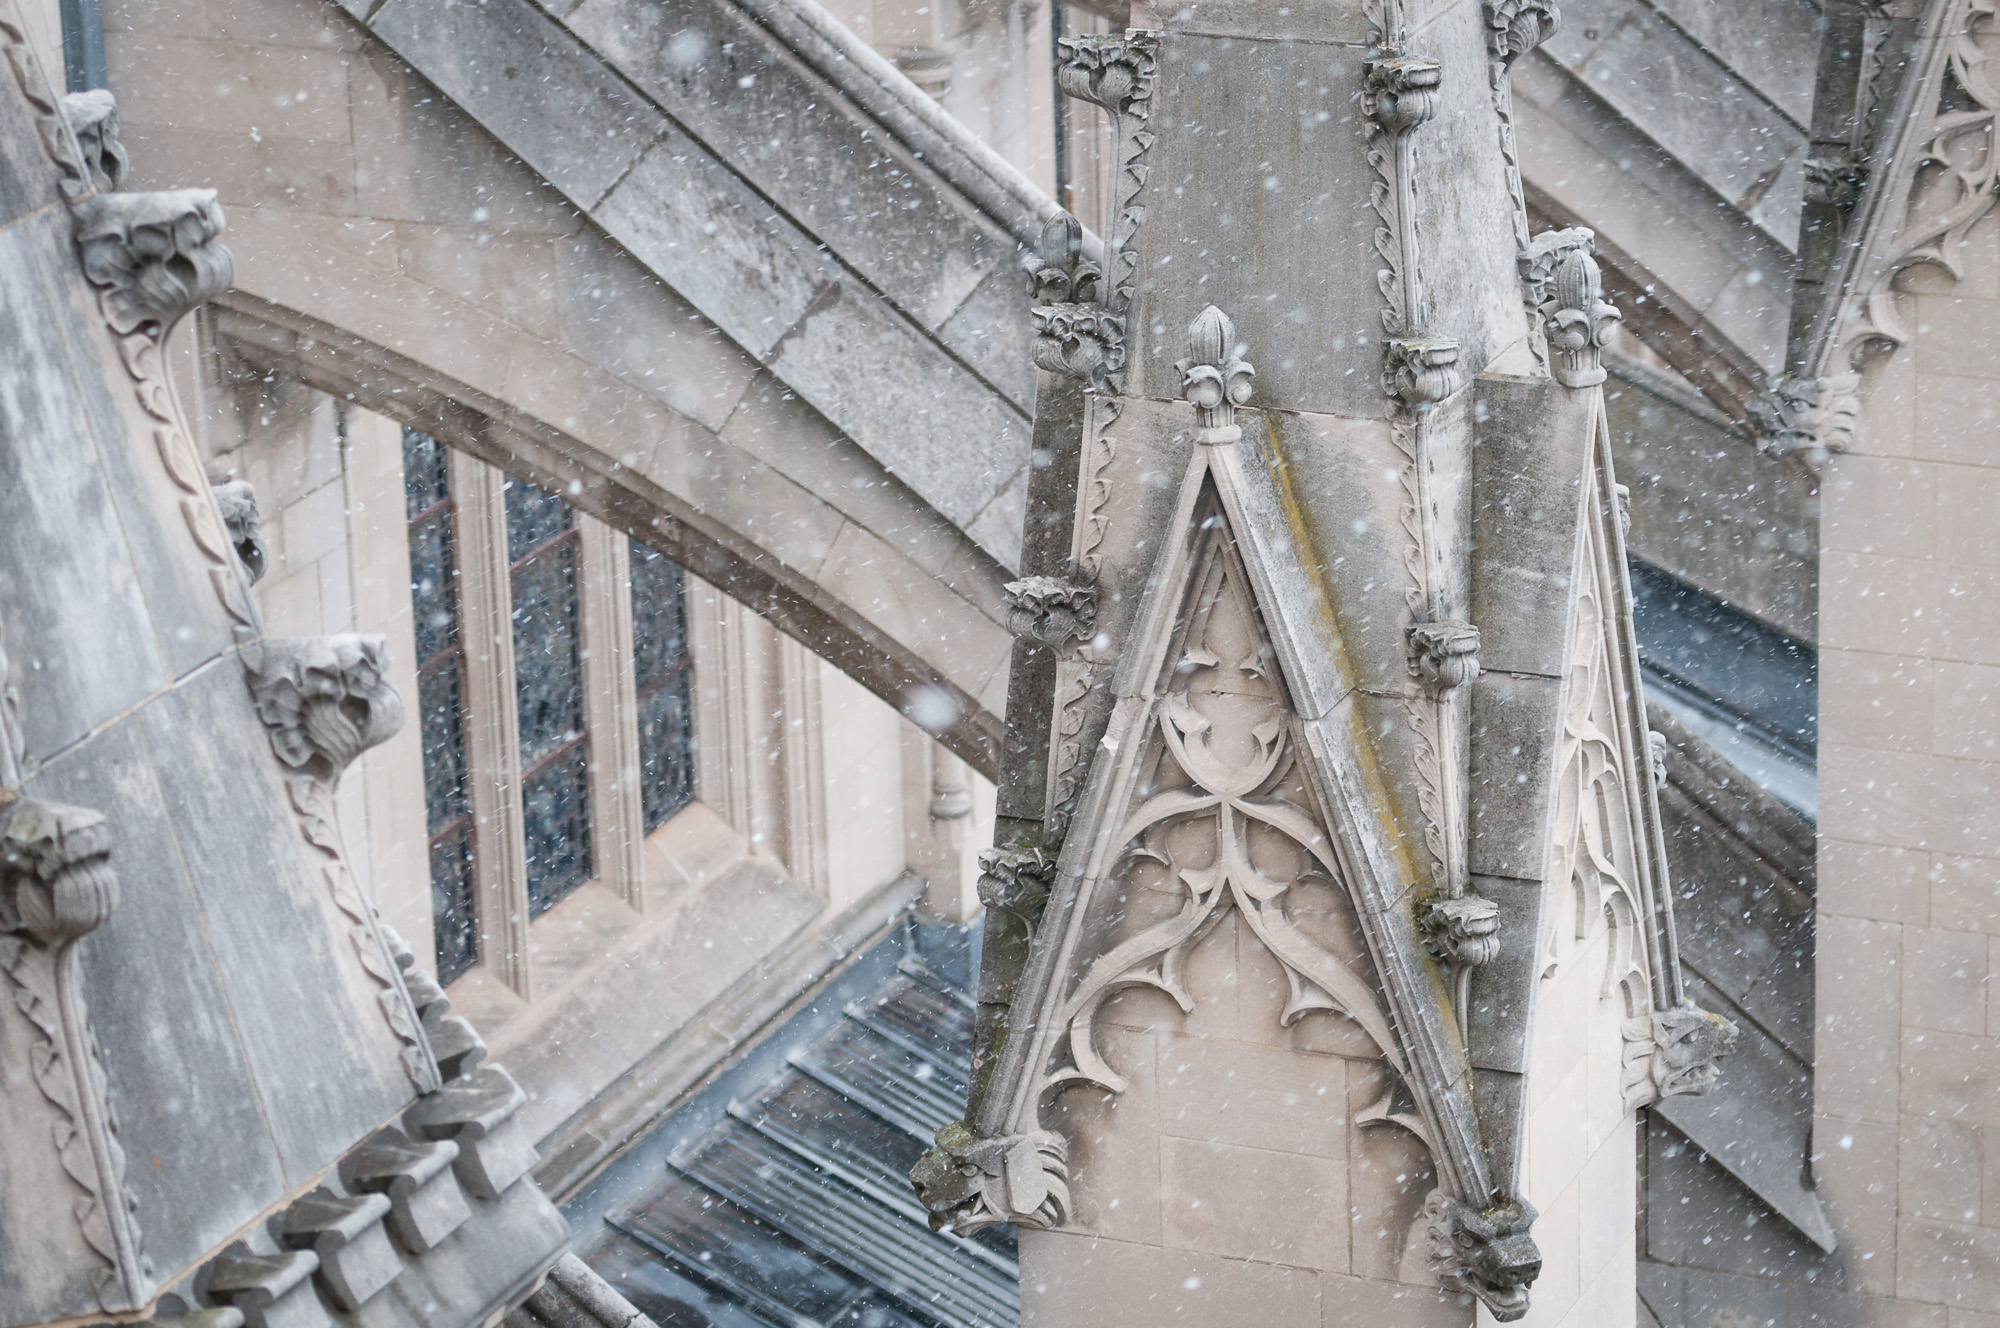 Details outside Washington National Cathedral, photographed from walkway.